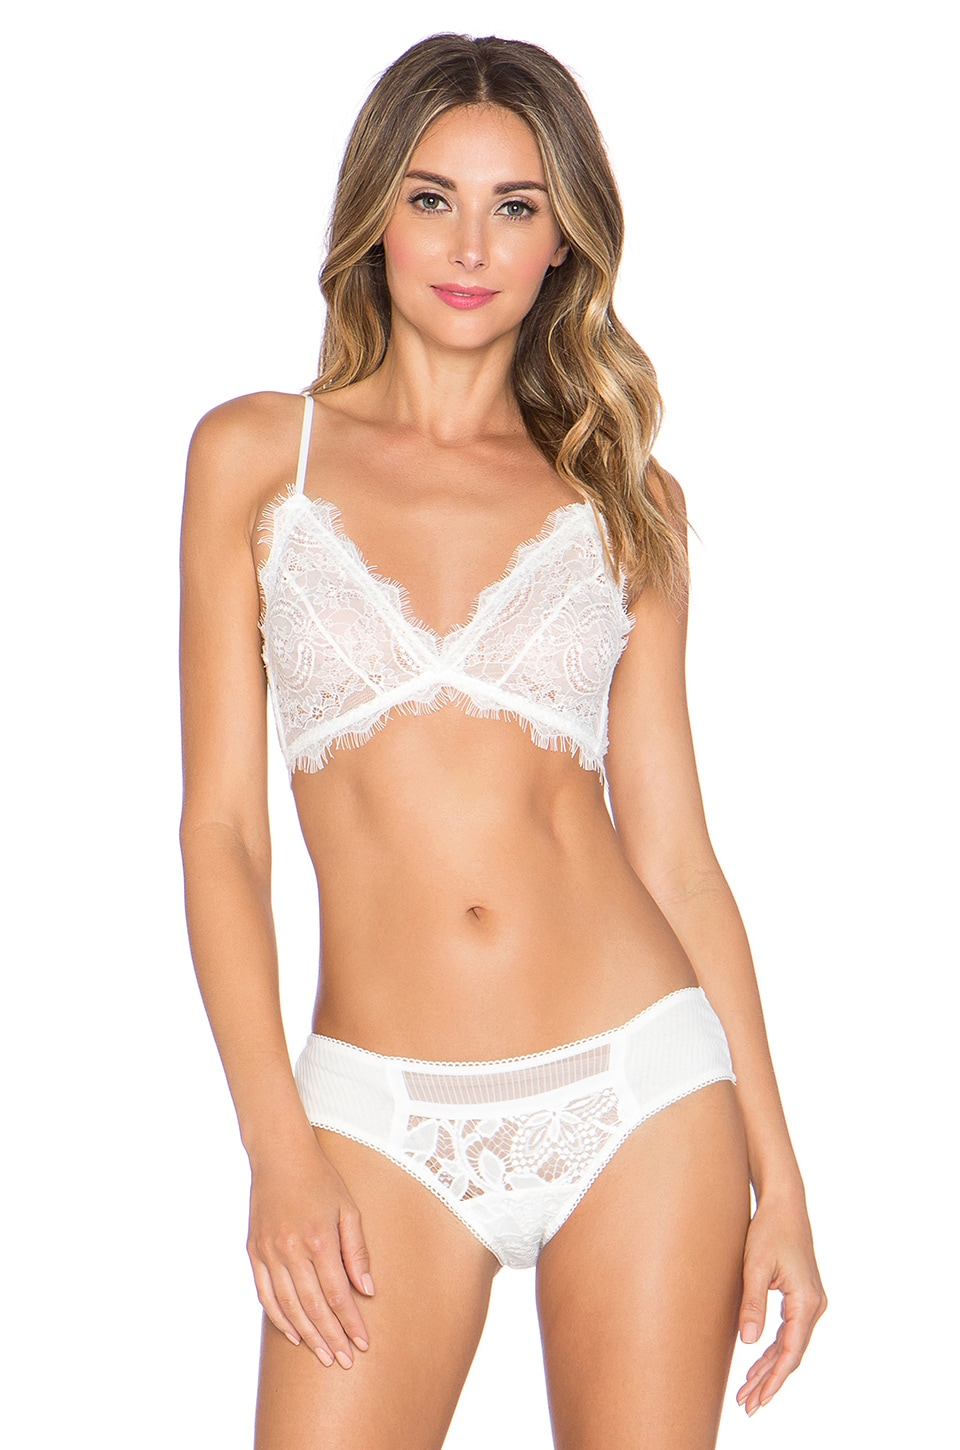 ANINE BING Lace Bra With Trim in Ivory